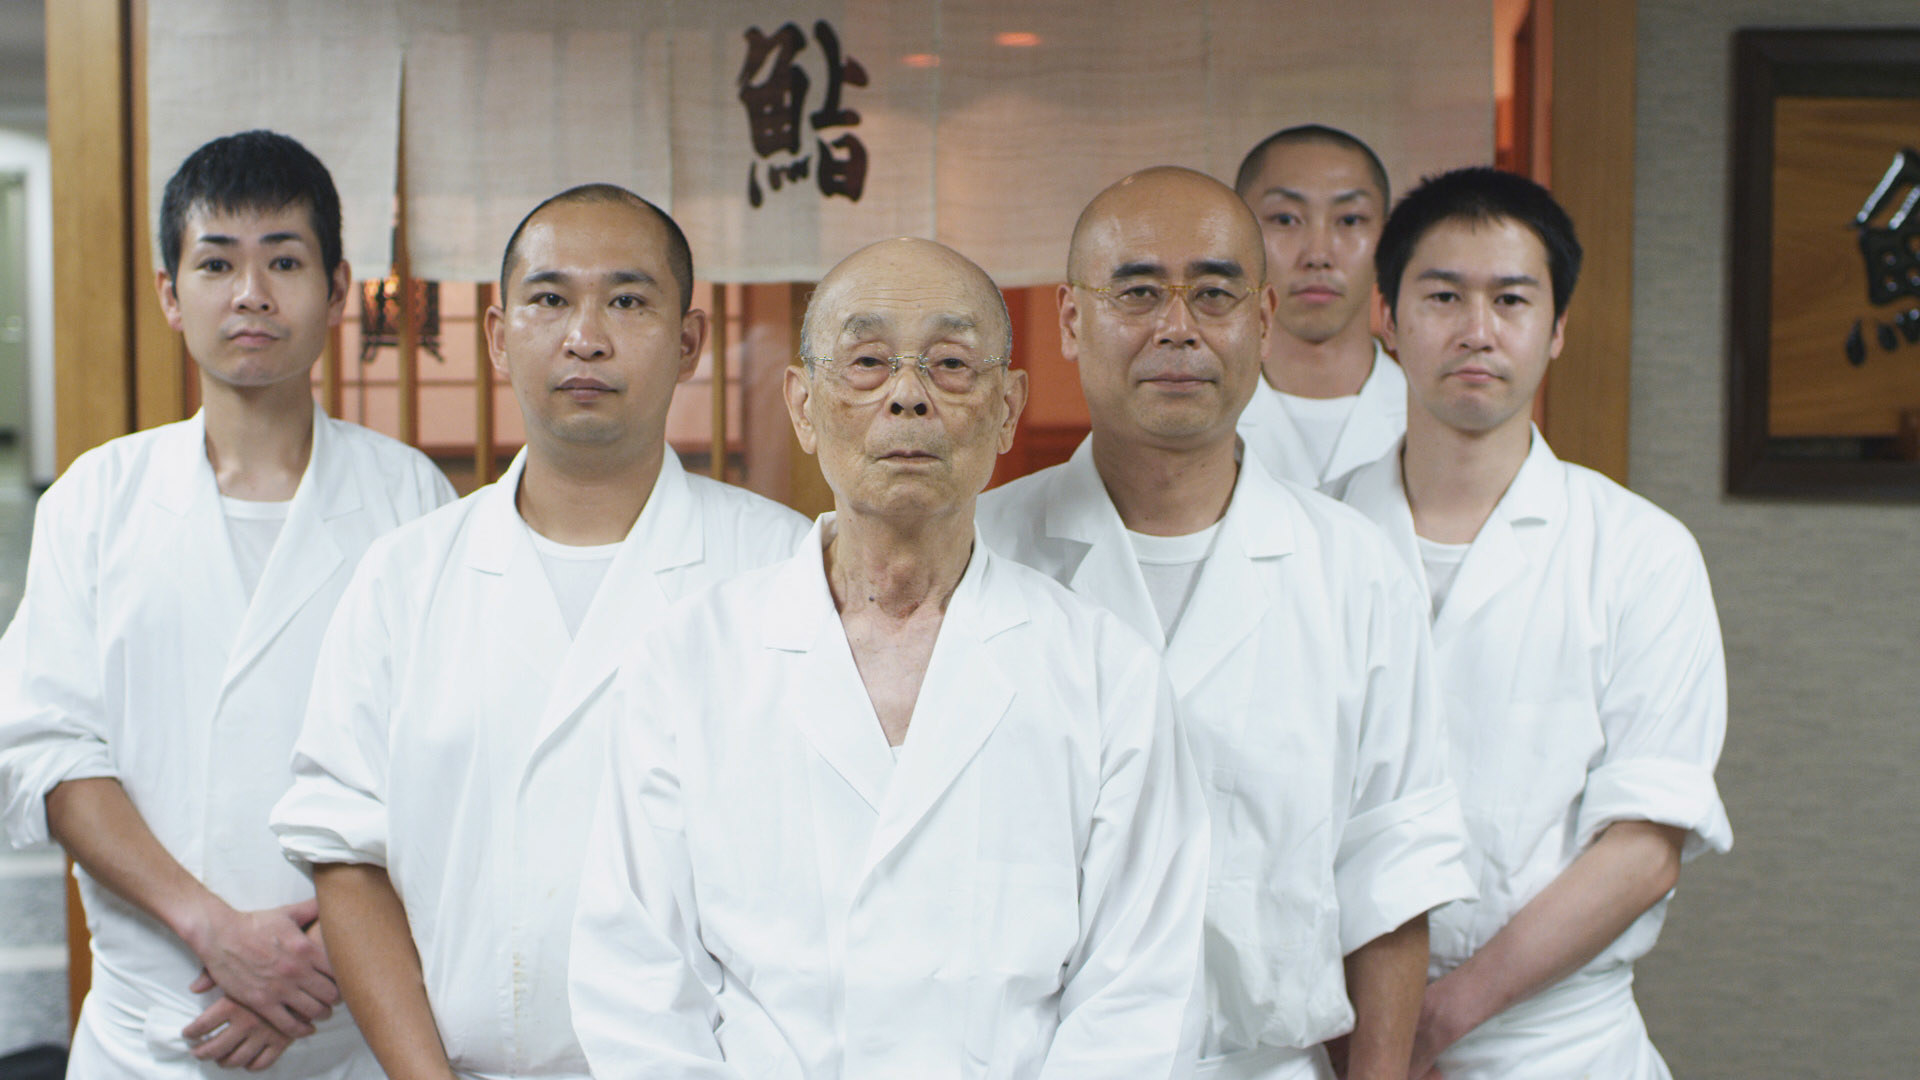 Jiro and his fellow sushi chefs